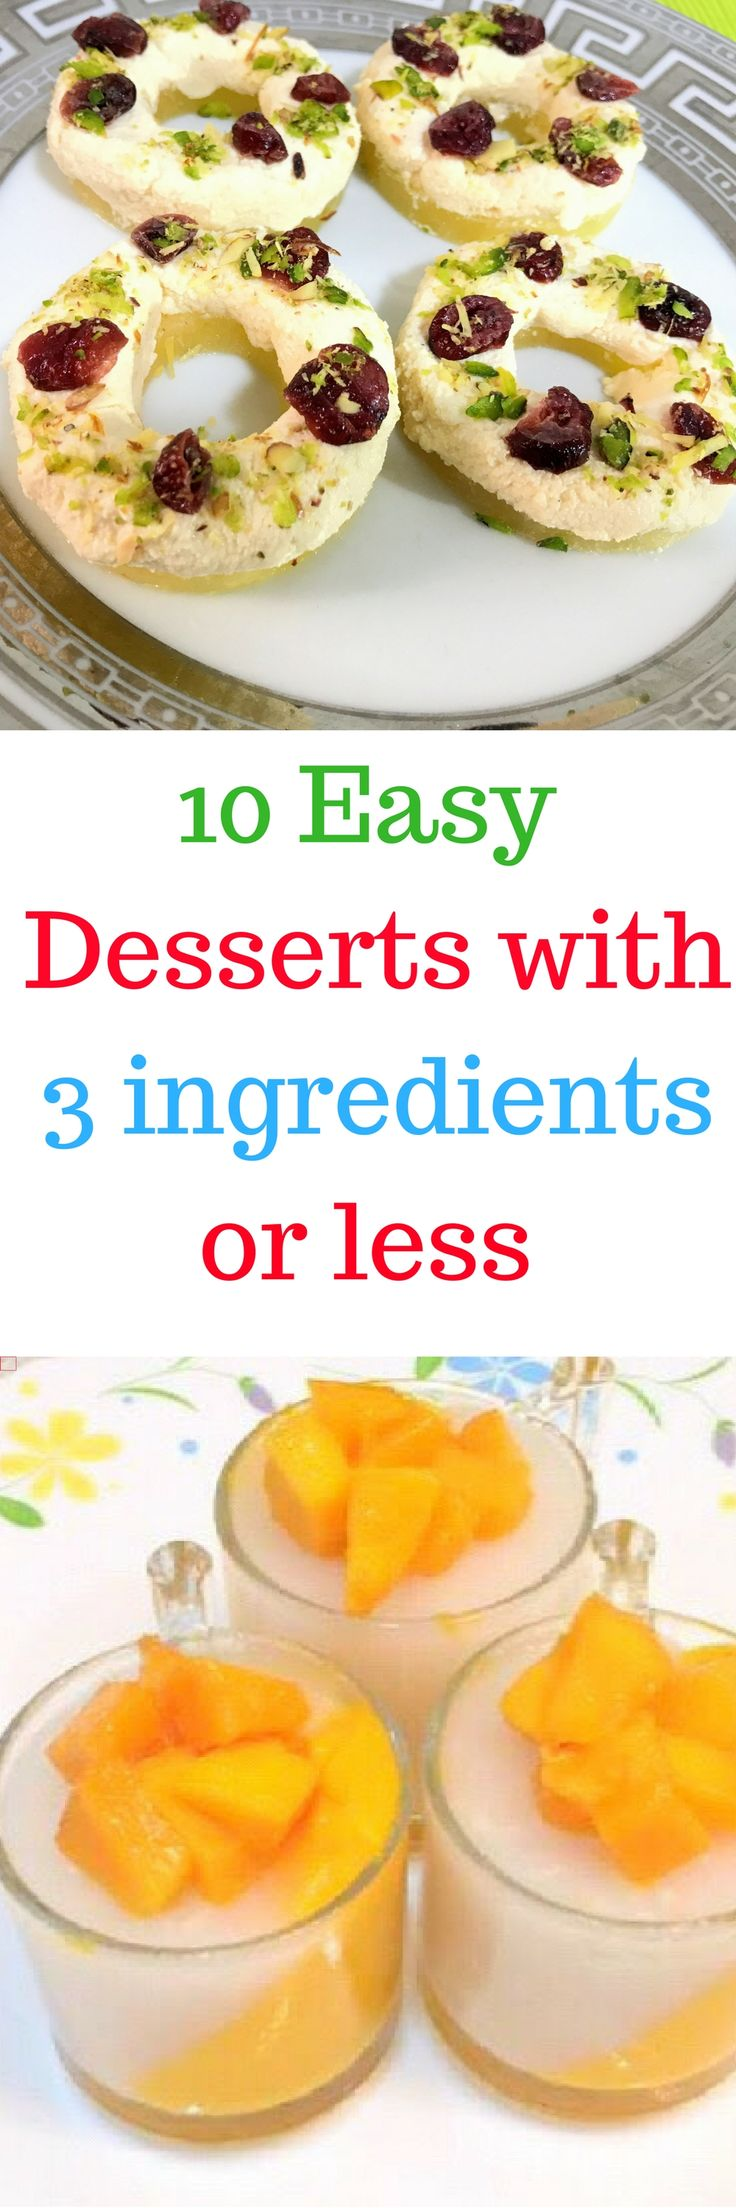 When your pantry is running low, turn to this list of quick and easy desserts. Every sweet recipe here requires three main ingredients (or fewer!) to make. You won't believe how easy to make these beautiful, homemade desserts are! These desserts are perfect for all kinds of  parties like a kitty party, a birthday party or just a friends get-together. Try them now and let us know which one's your favorite!